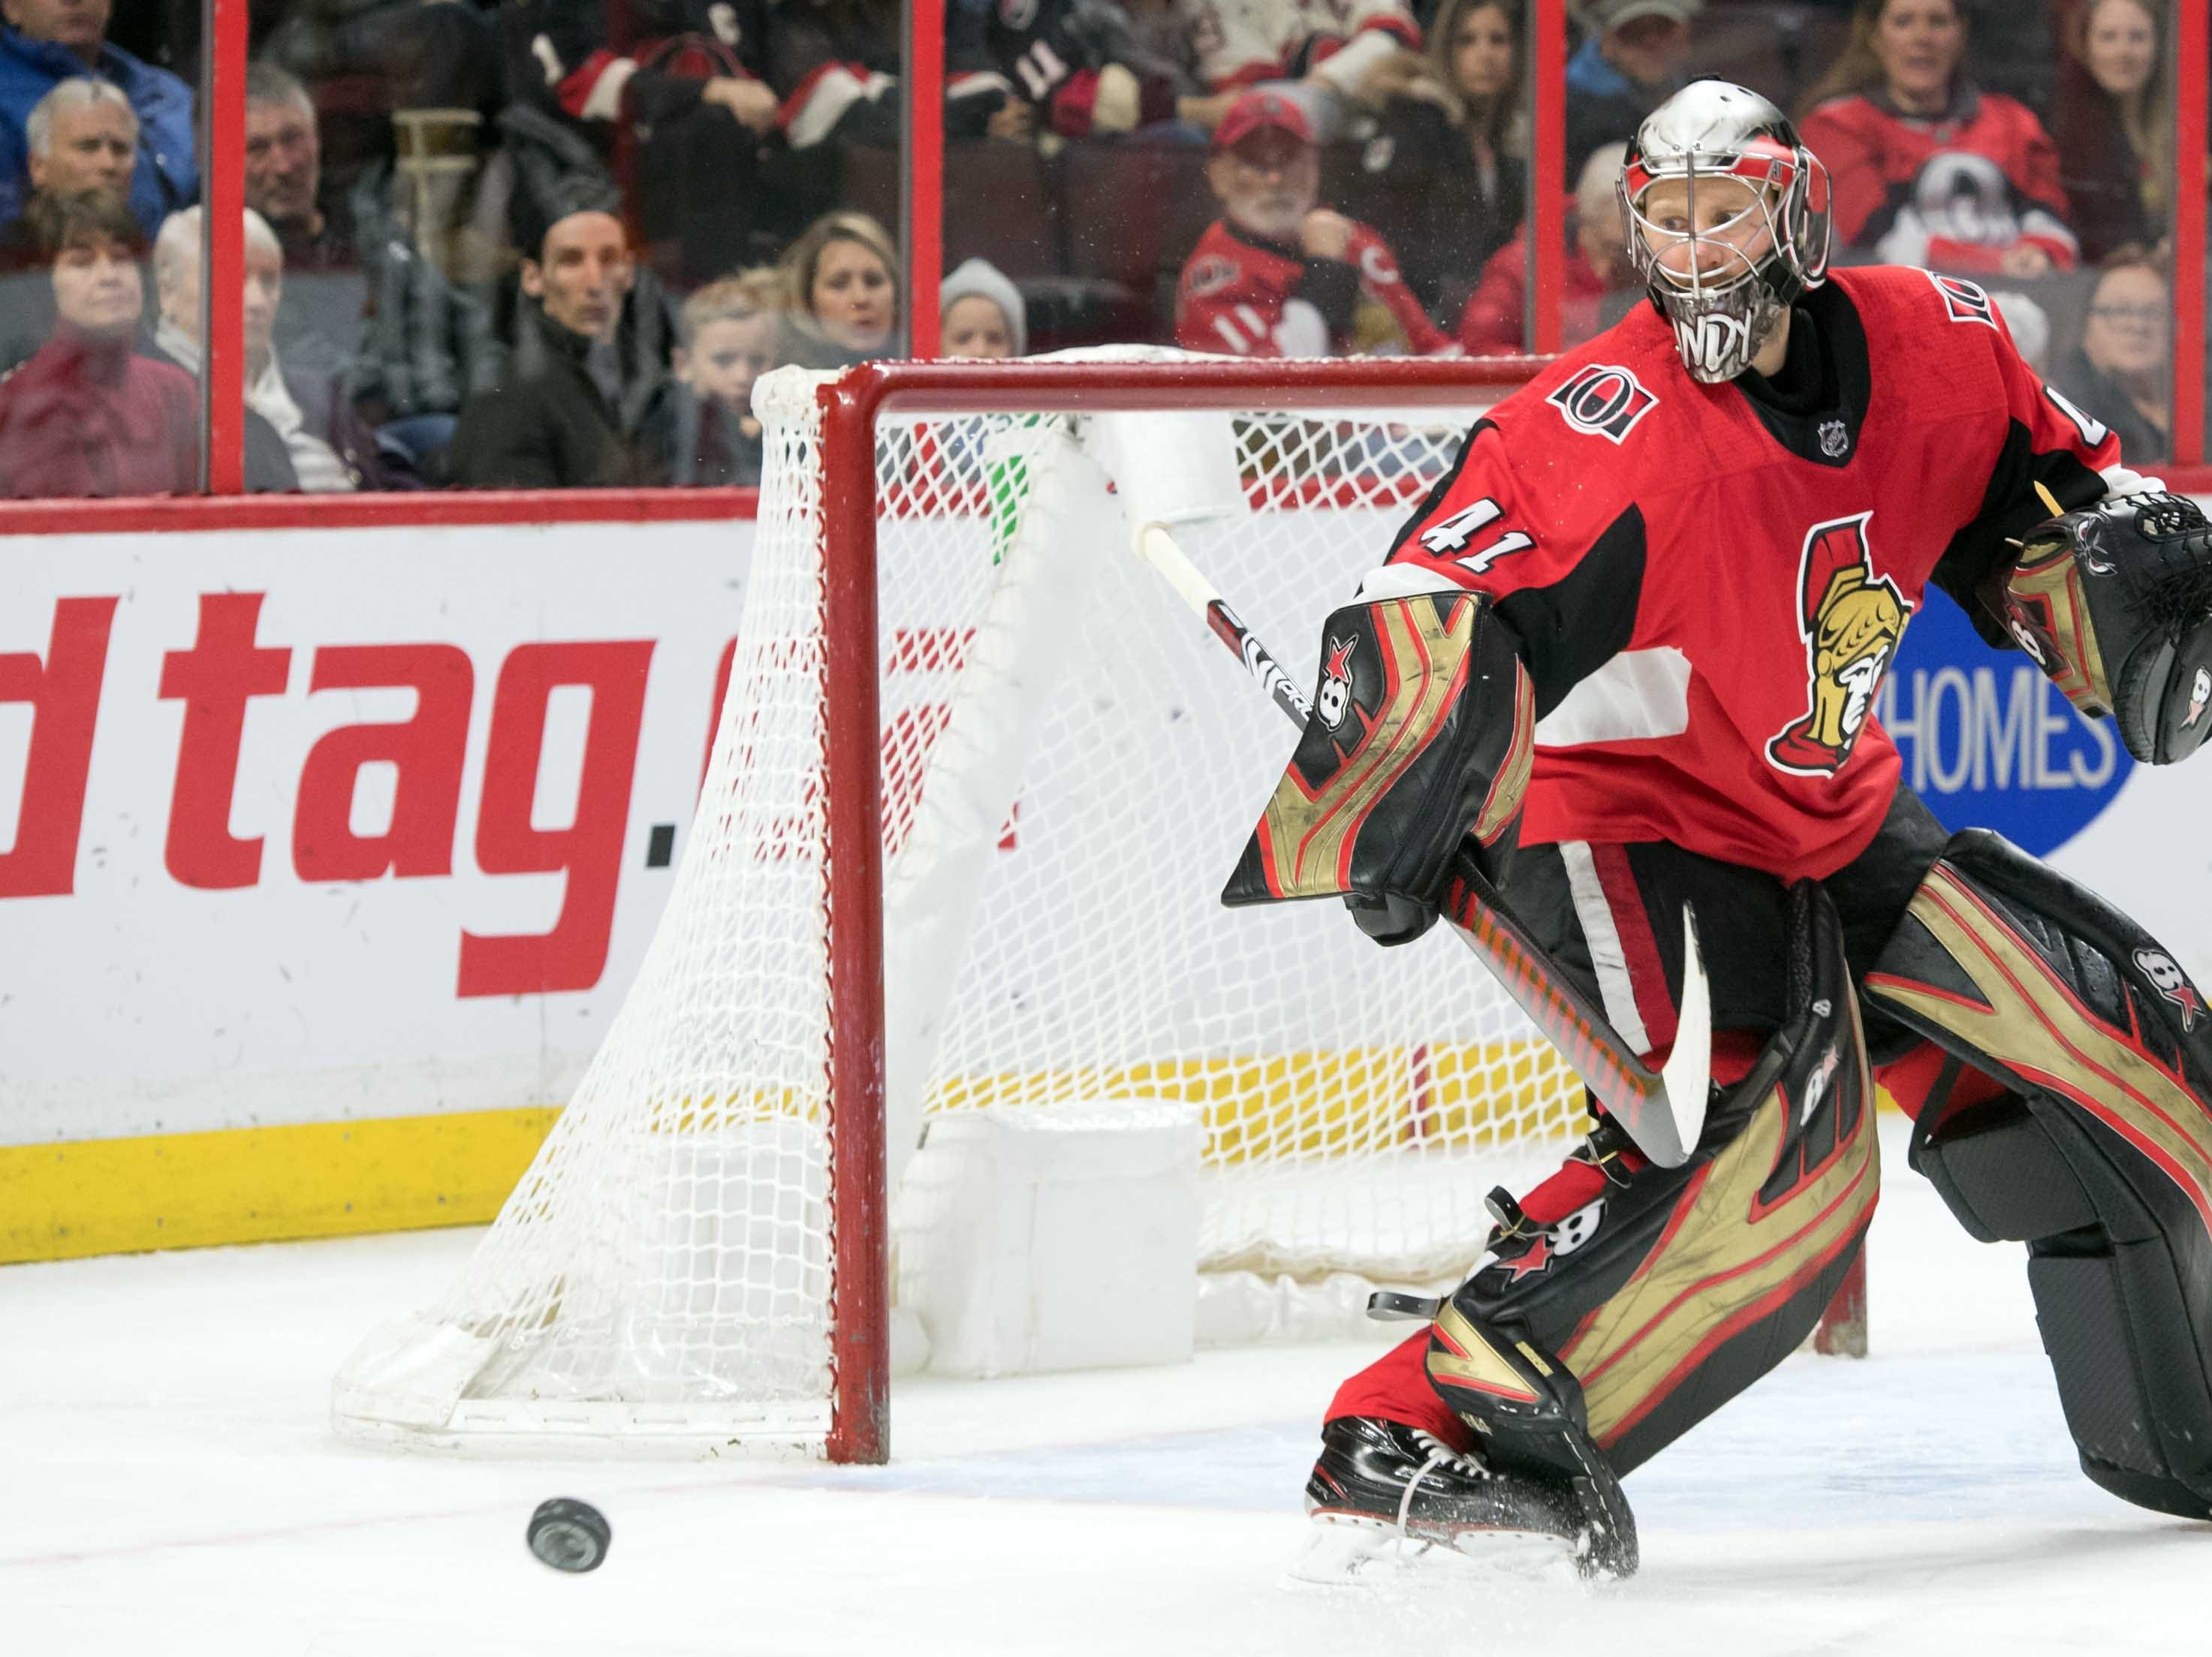 Jan 22, 2019; Ottawa, Ontario, CAN; Ottawa Senators goalie Craig Anderson (41) makes a save in the first period against the Arizona Coyotes at the Canadian Tire Centre. Mandatory Credit: Marc DesRosiers-USA TODAY Sports